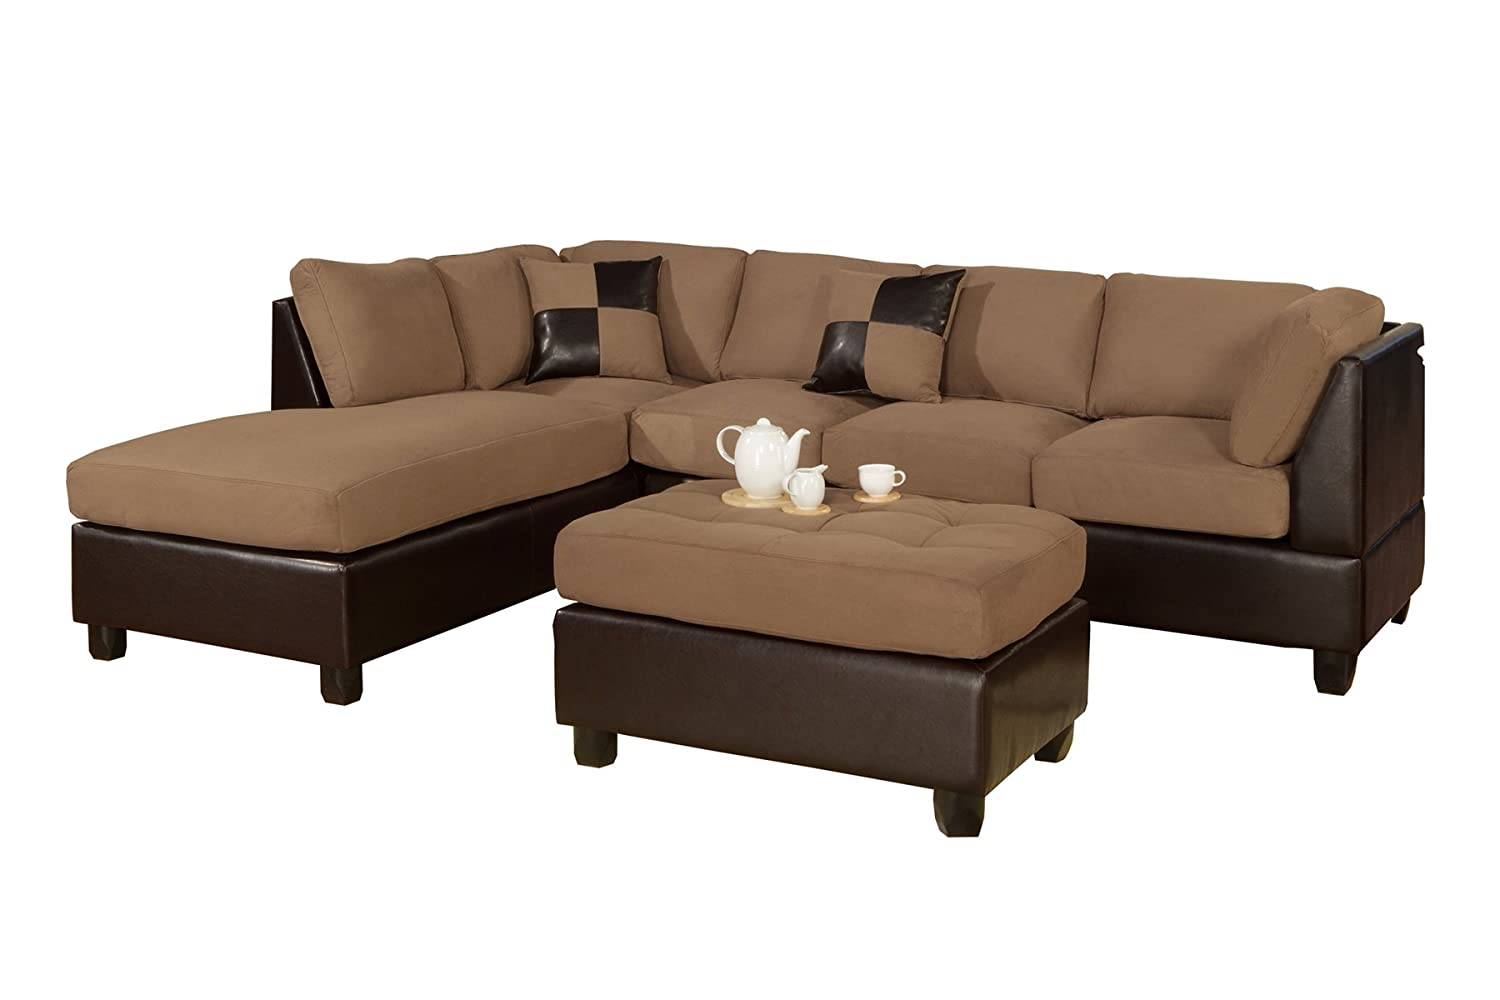 Amazon.com: Bobkona Hungtinton Microfiber/Faux Leather 3 Piece Sectional  Sofa Set, Saddle: Kitchen U0026 Dining Idea